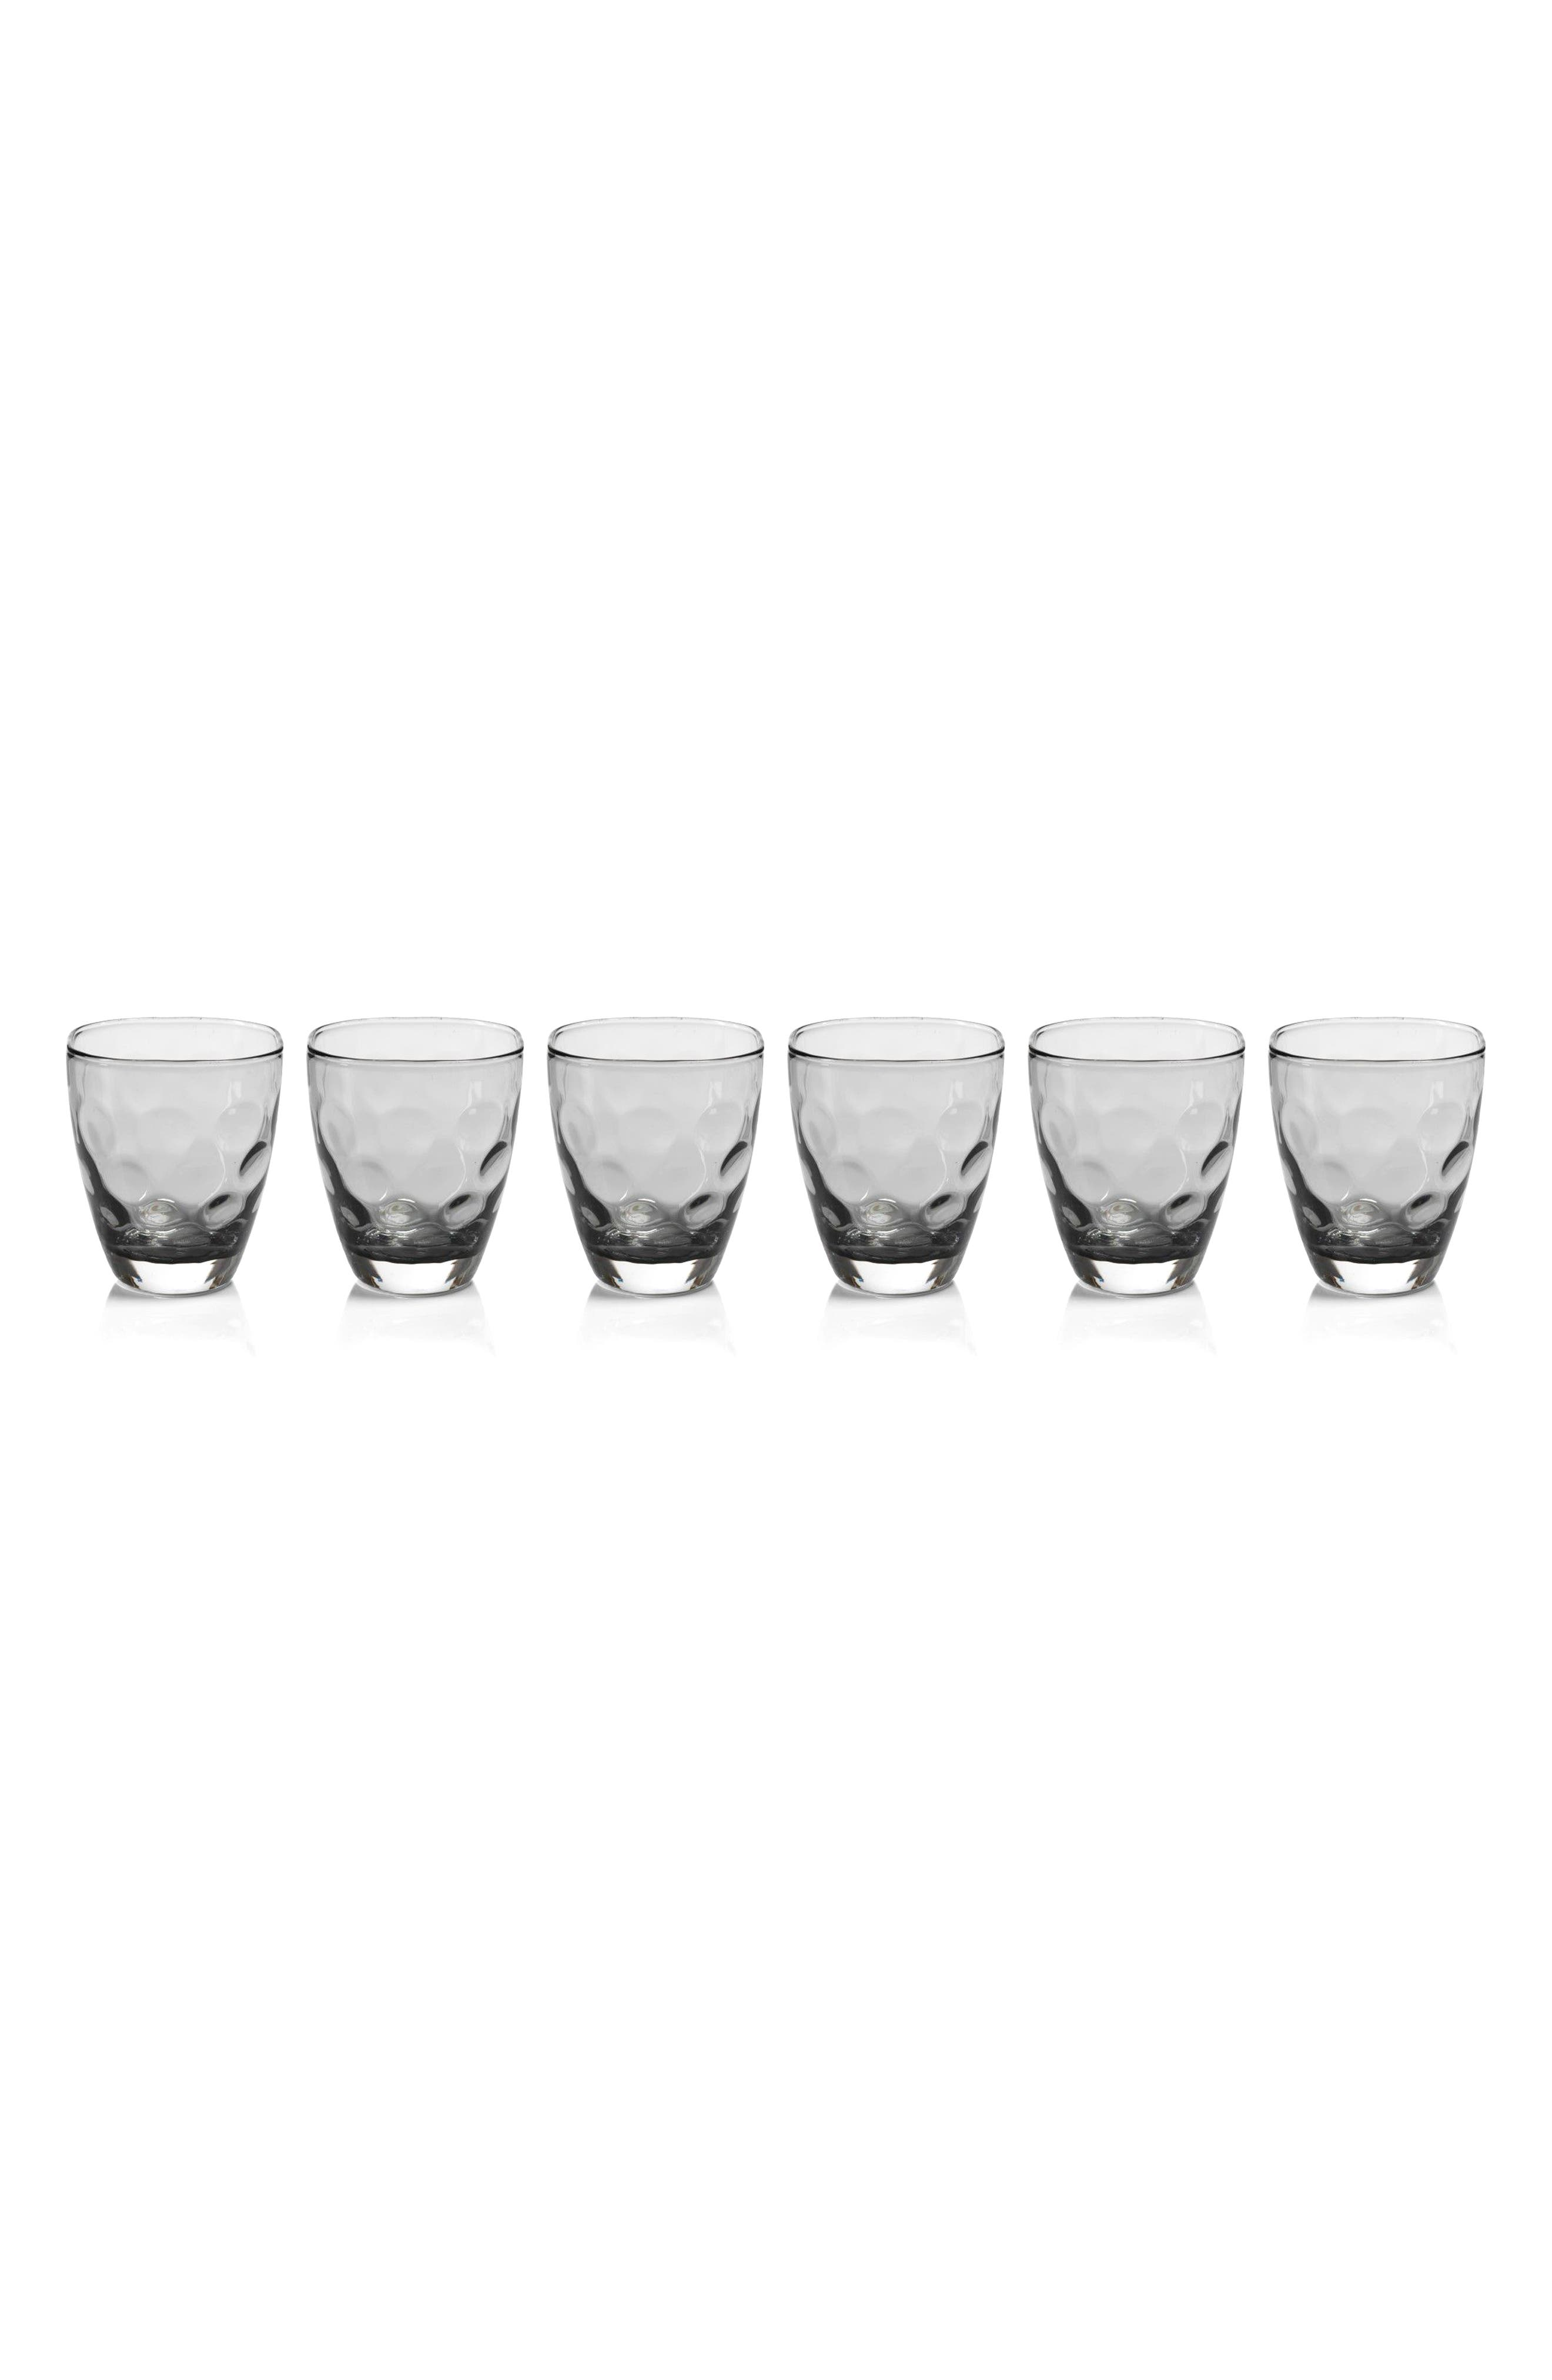 Dimpled Set of 6 Double Old Fashioned Glasses,                             Main thumbnail 1, color,                             100